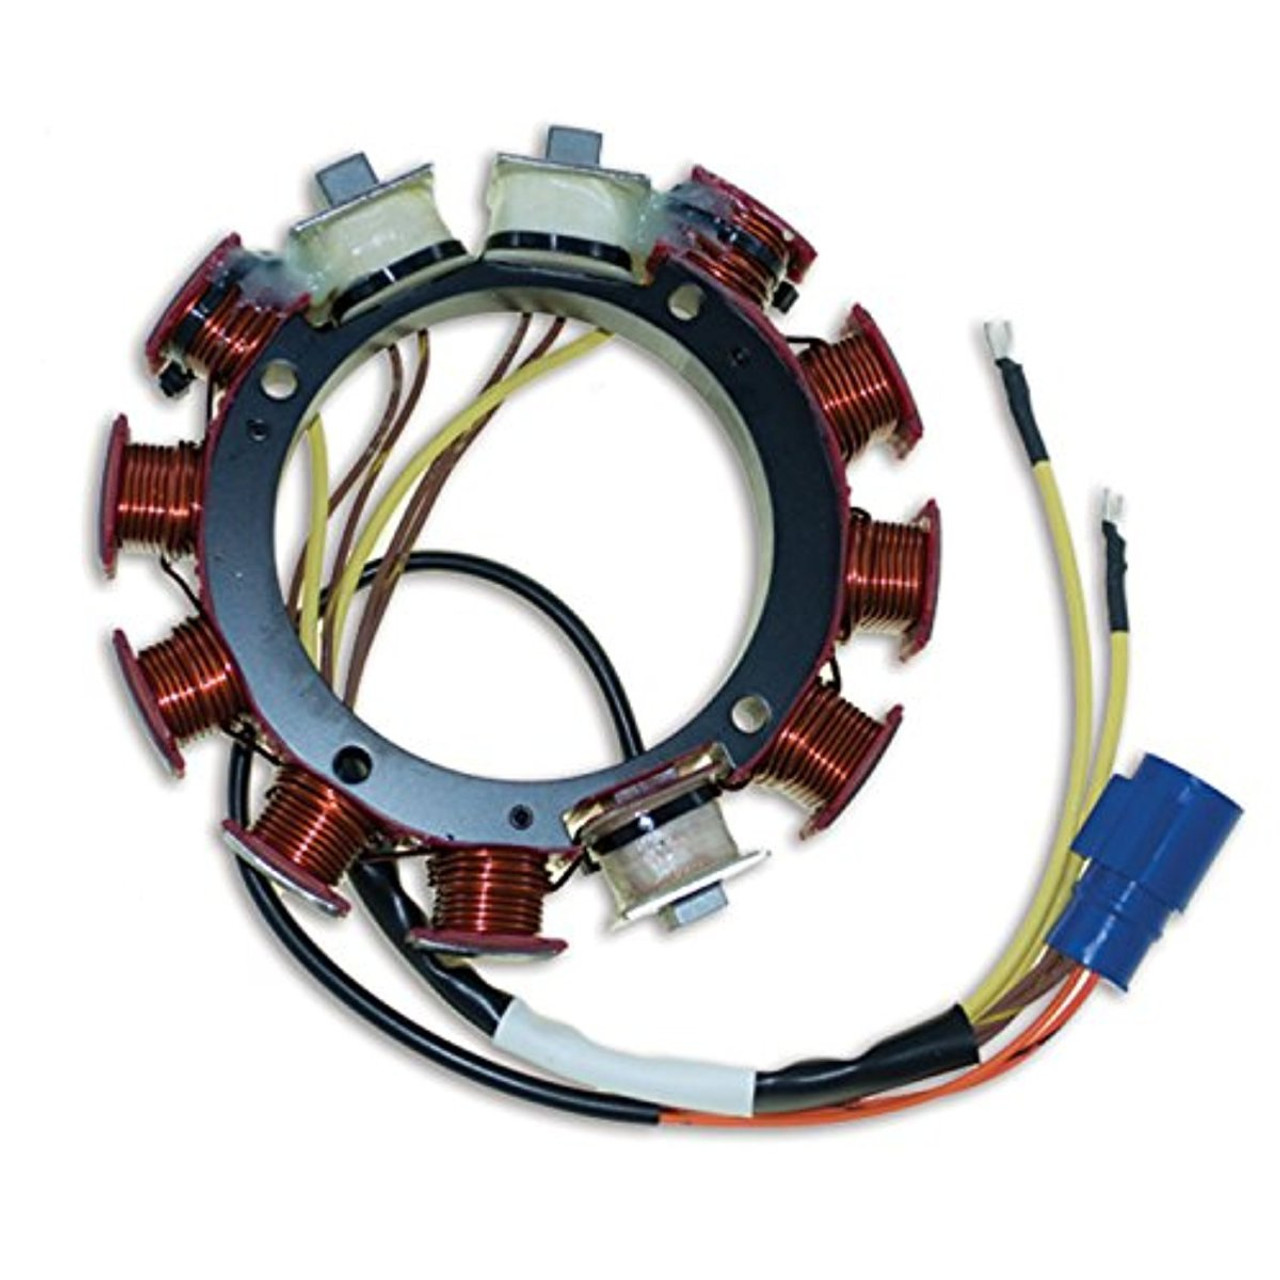 CDI 173-4981 Stator for Johnson Evinrude 150 /& 175 hp Optical Ignition 35 amp